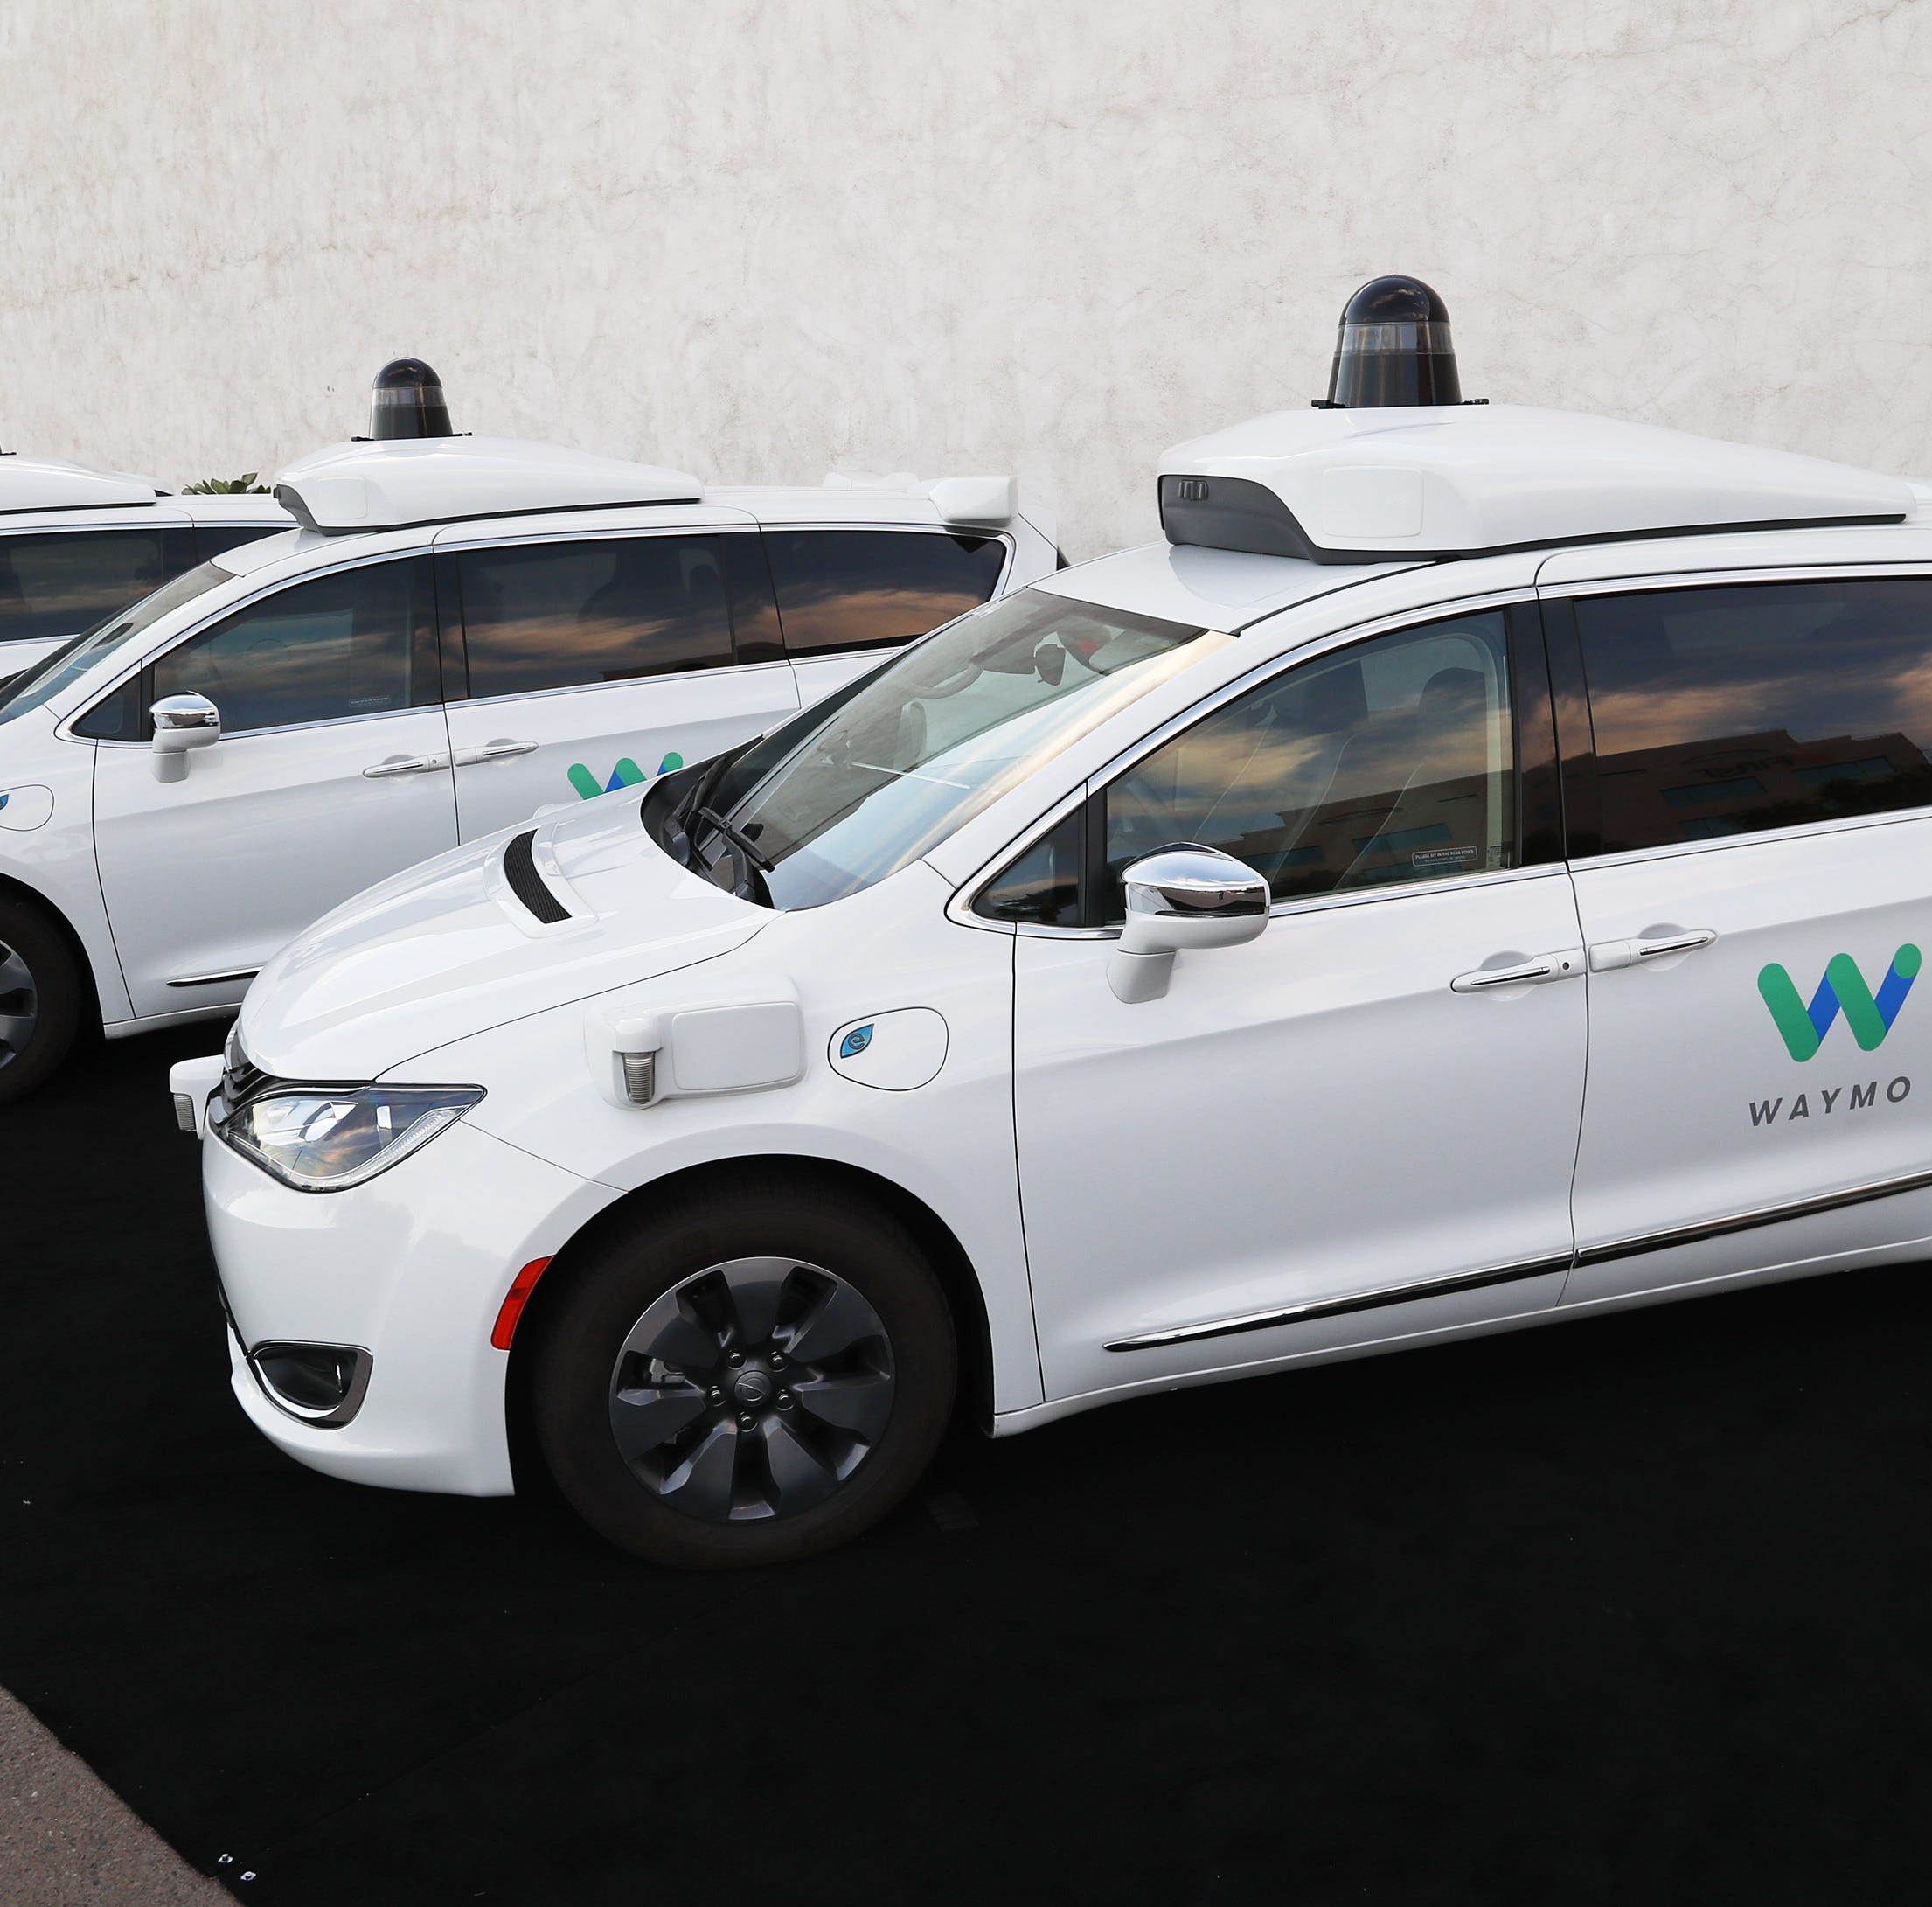 Waymo's driverless cars on the road: Cautious, clunky, impressive